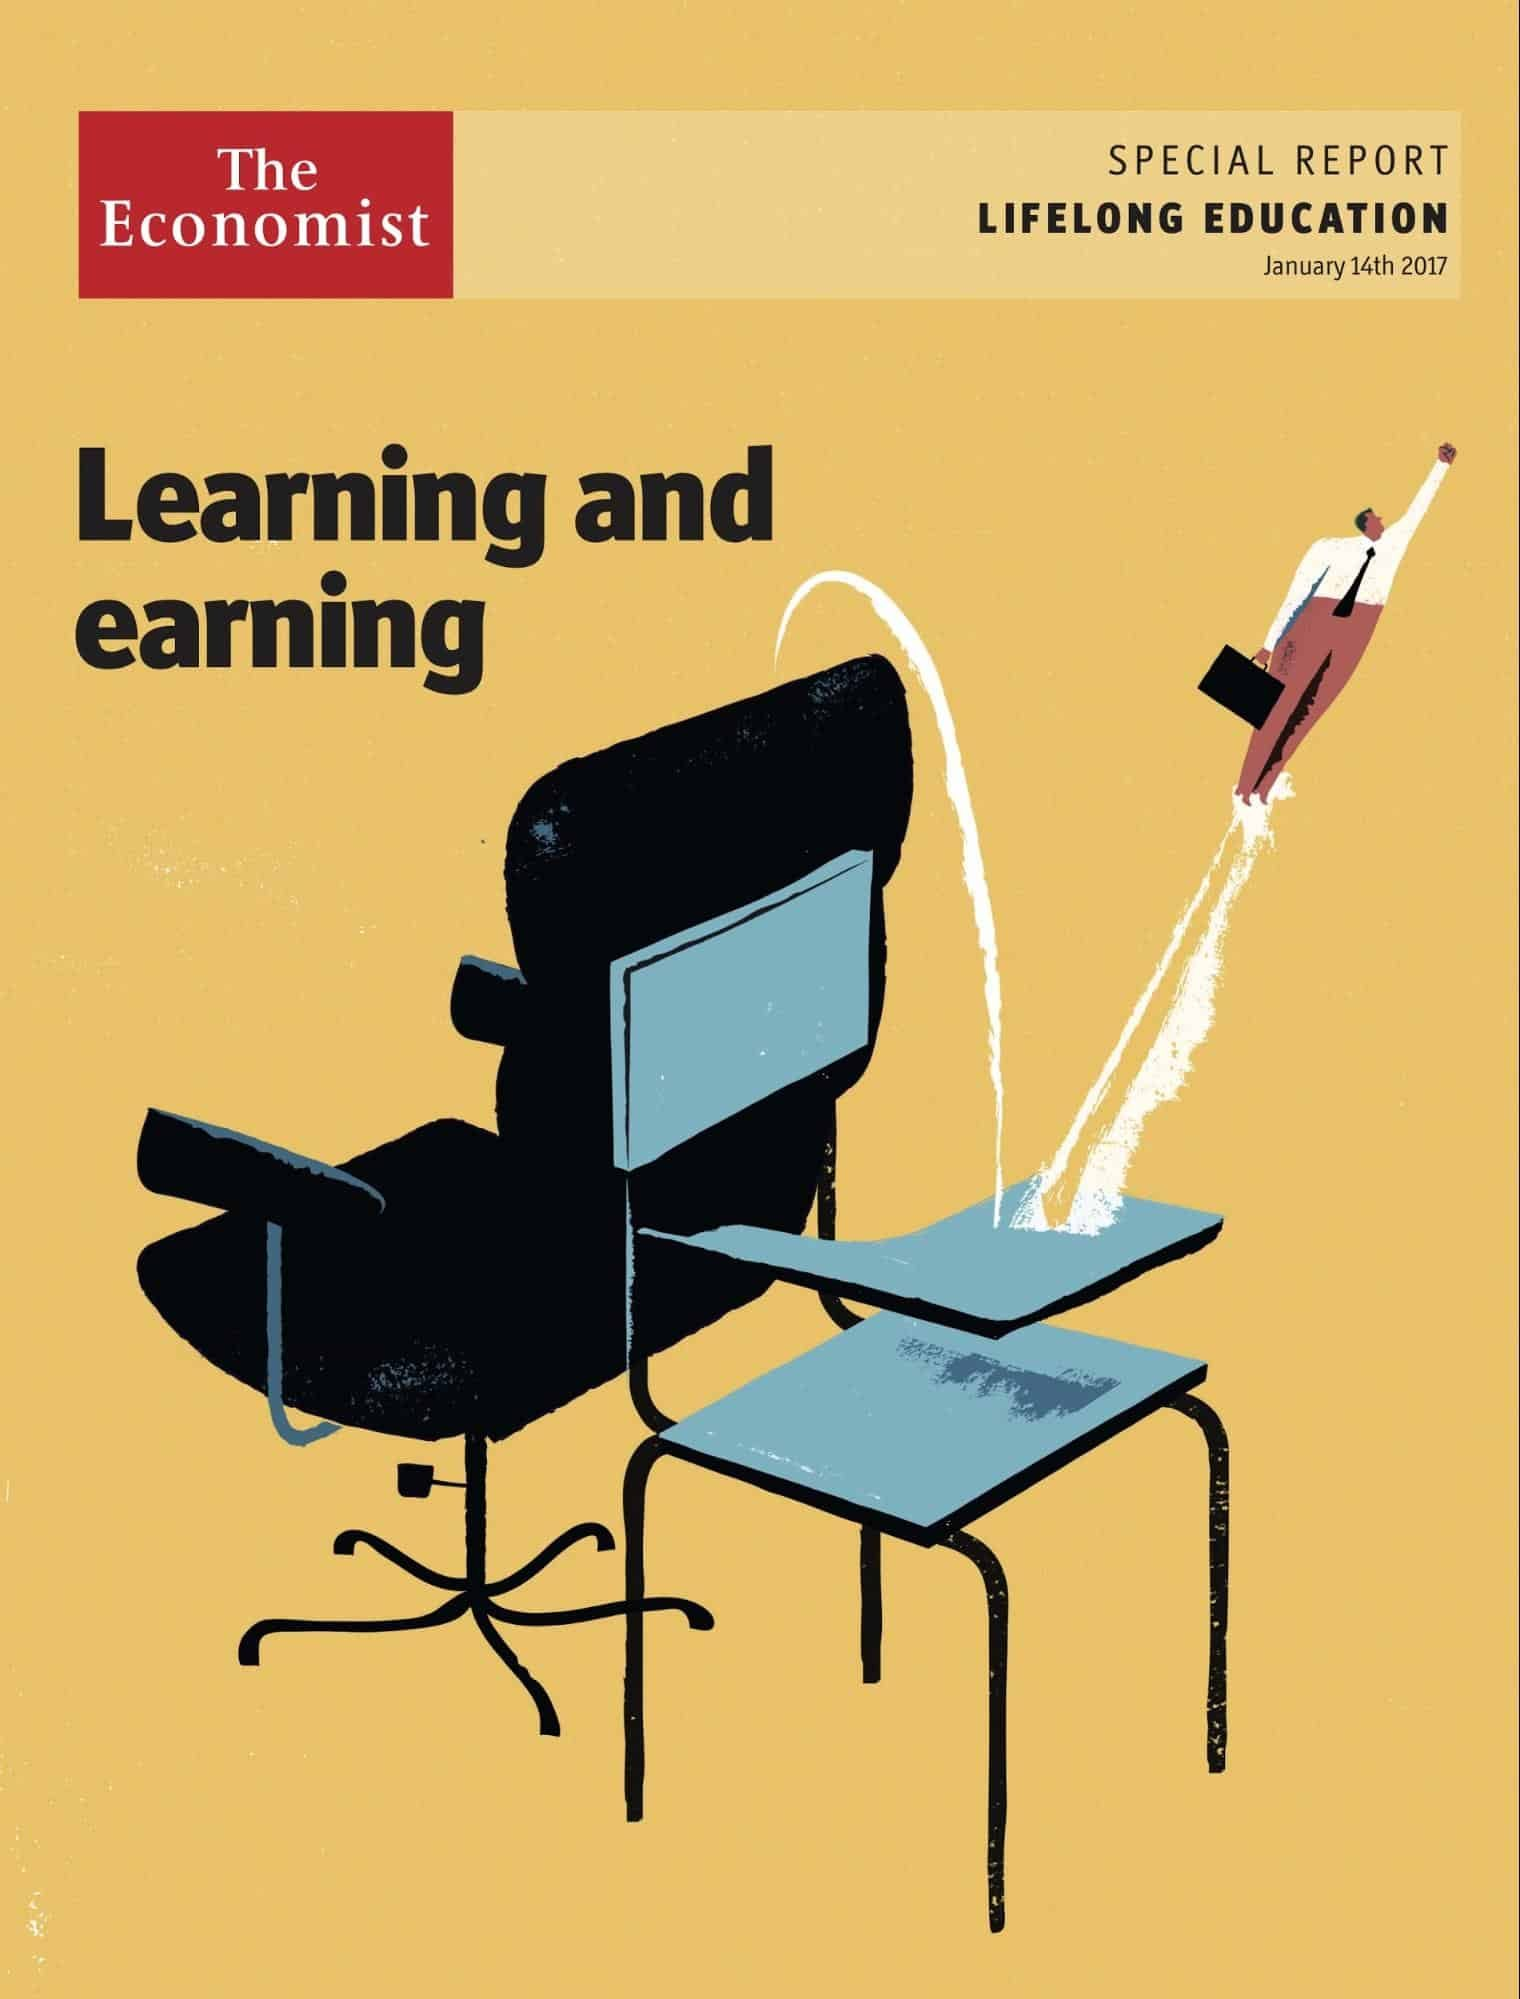 Learning and Earning free ebook, the economist free ebook, free ebook example